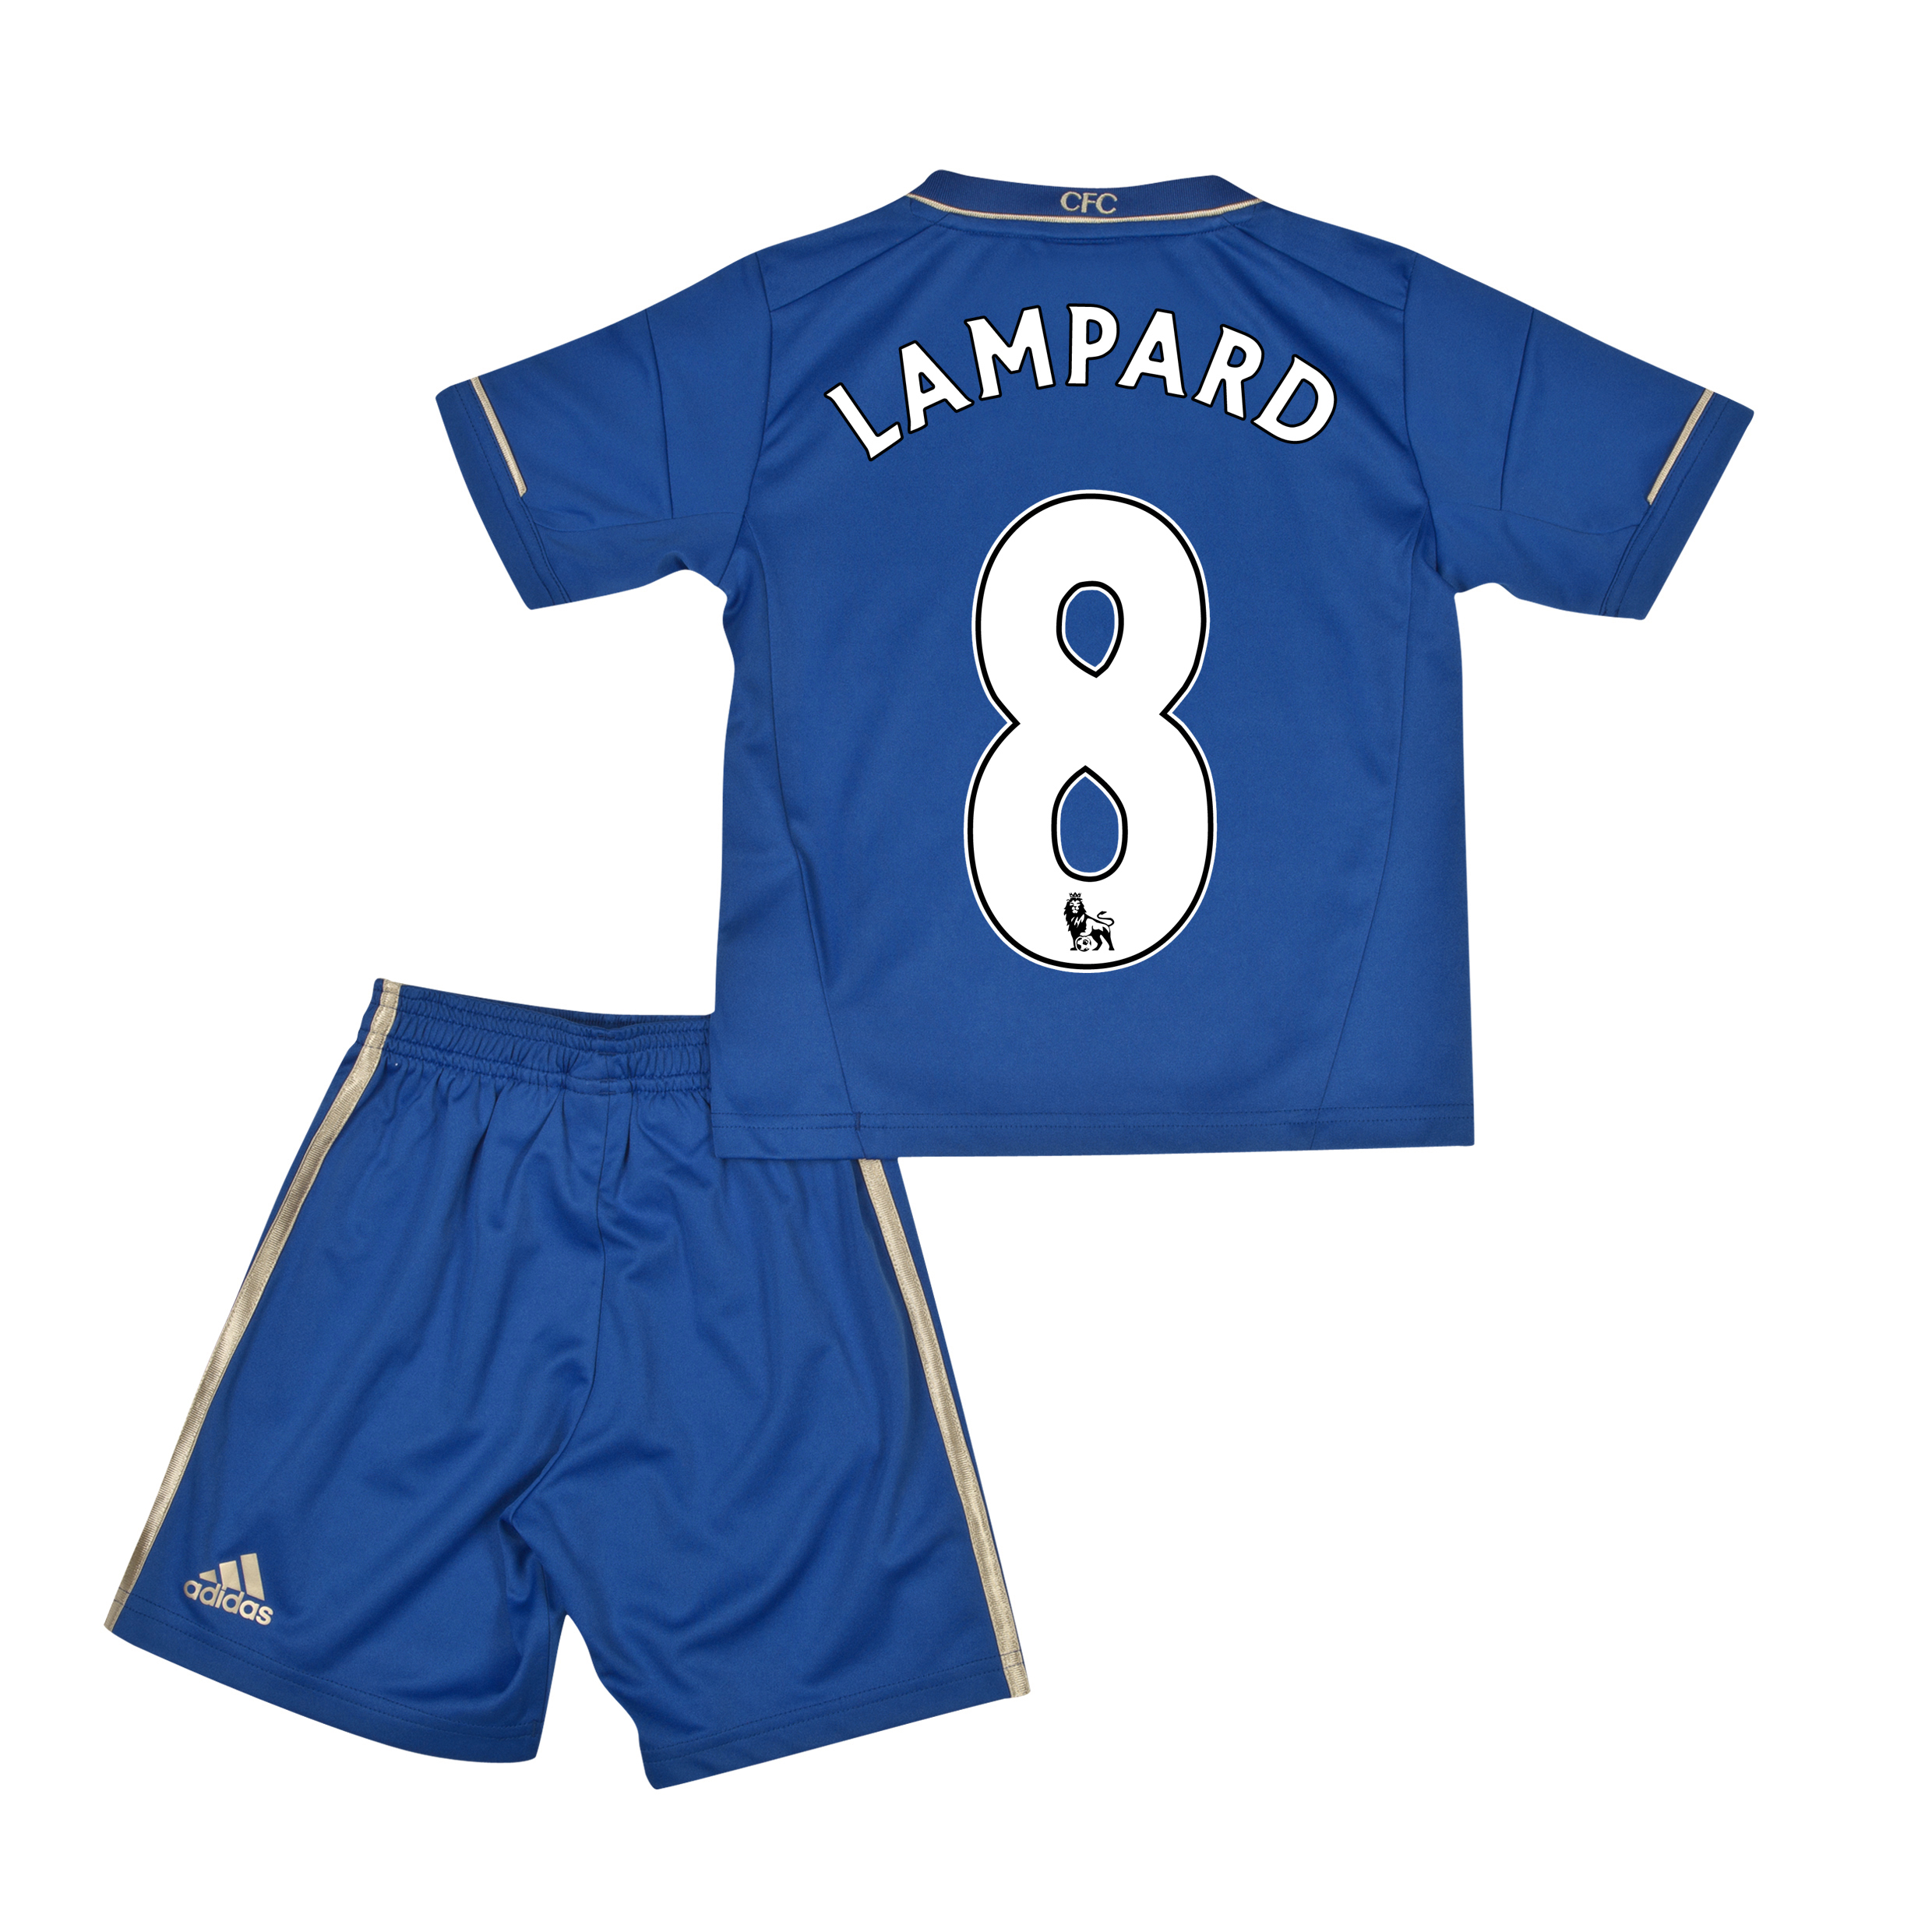 Chelsea Home Mini Kit 2012/13 with Lampard 8 printing